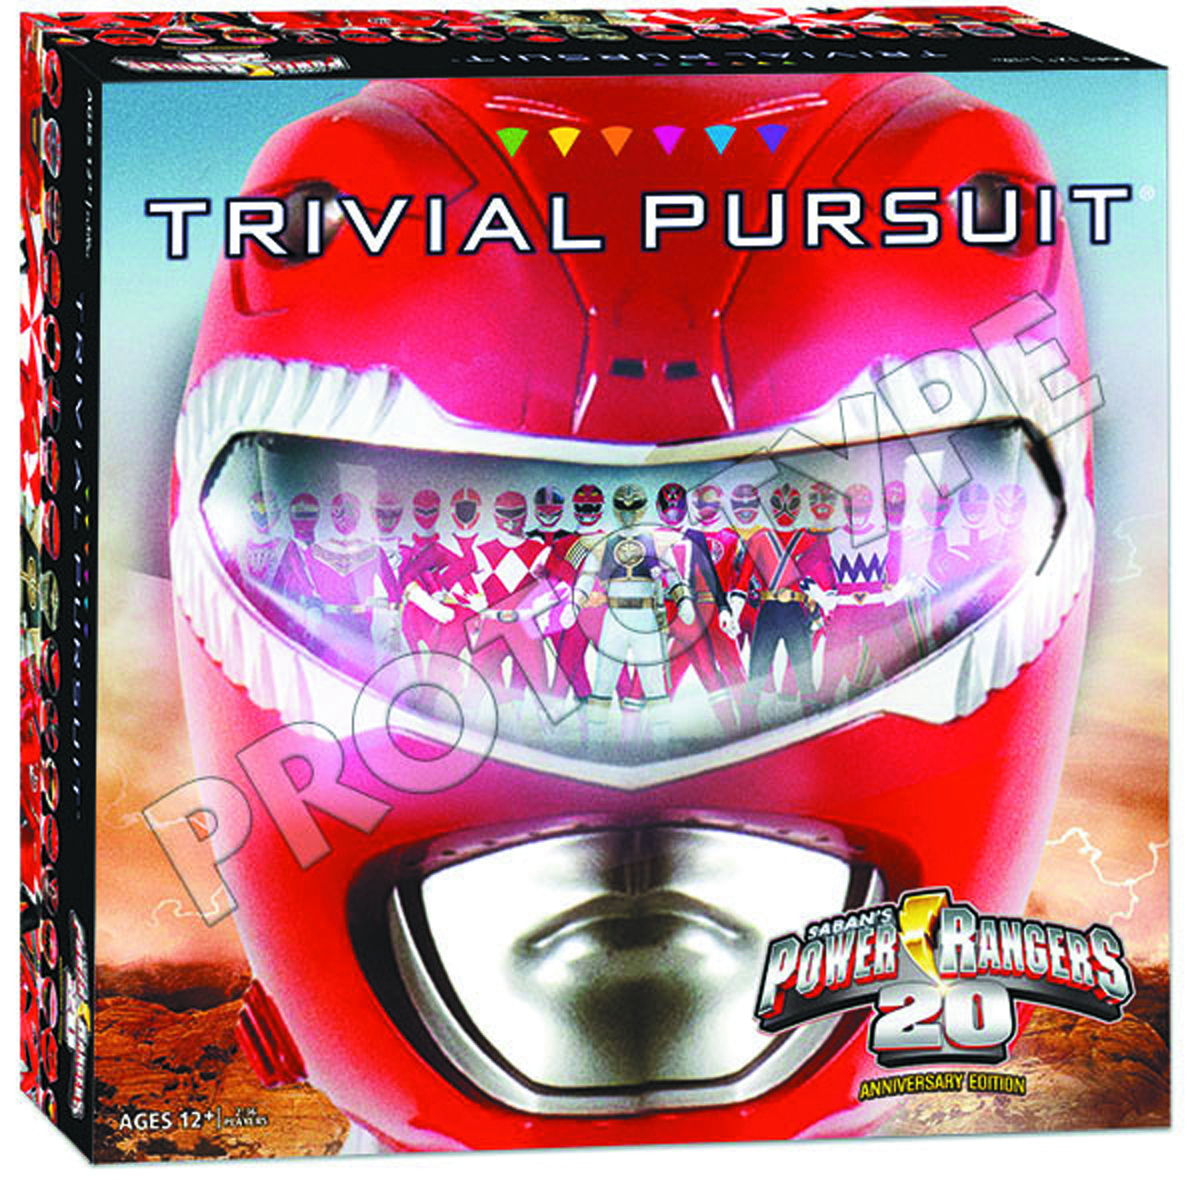 POWER RANGERS 20TH ANNIVERSARY TRIVIAL PURSUIT